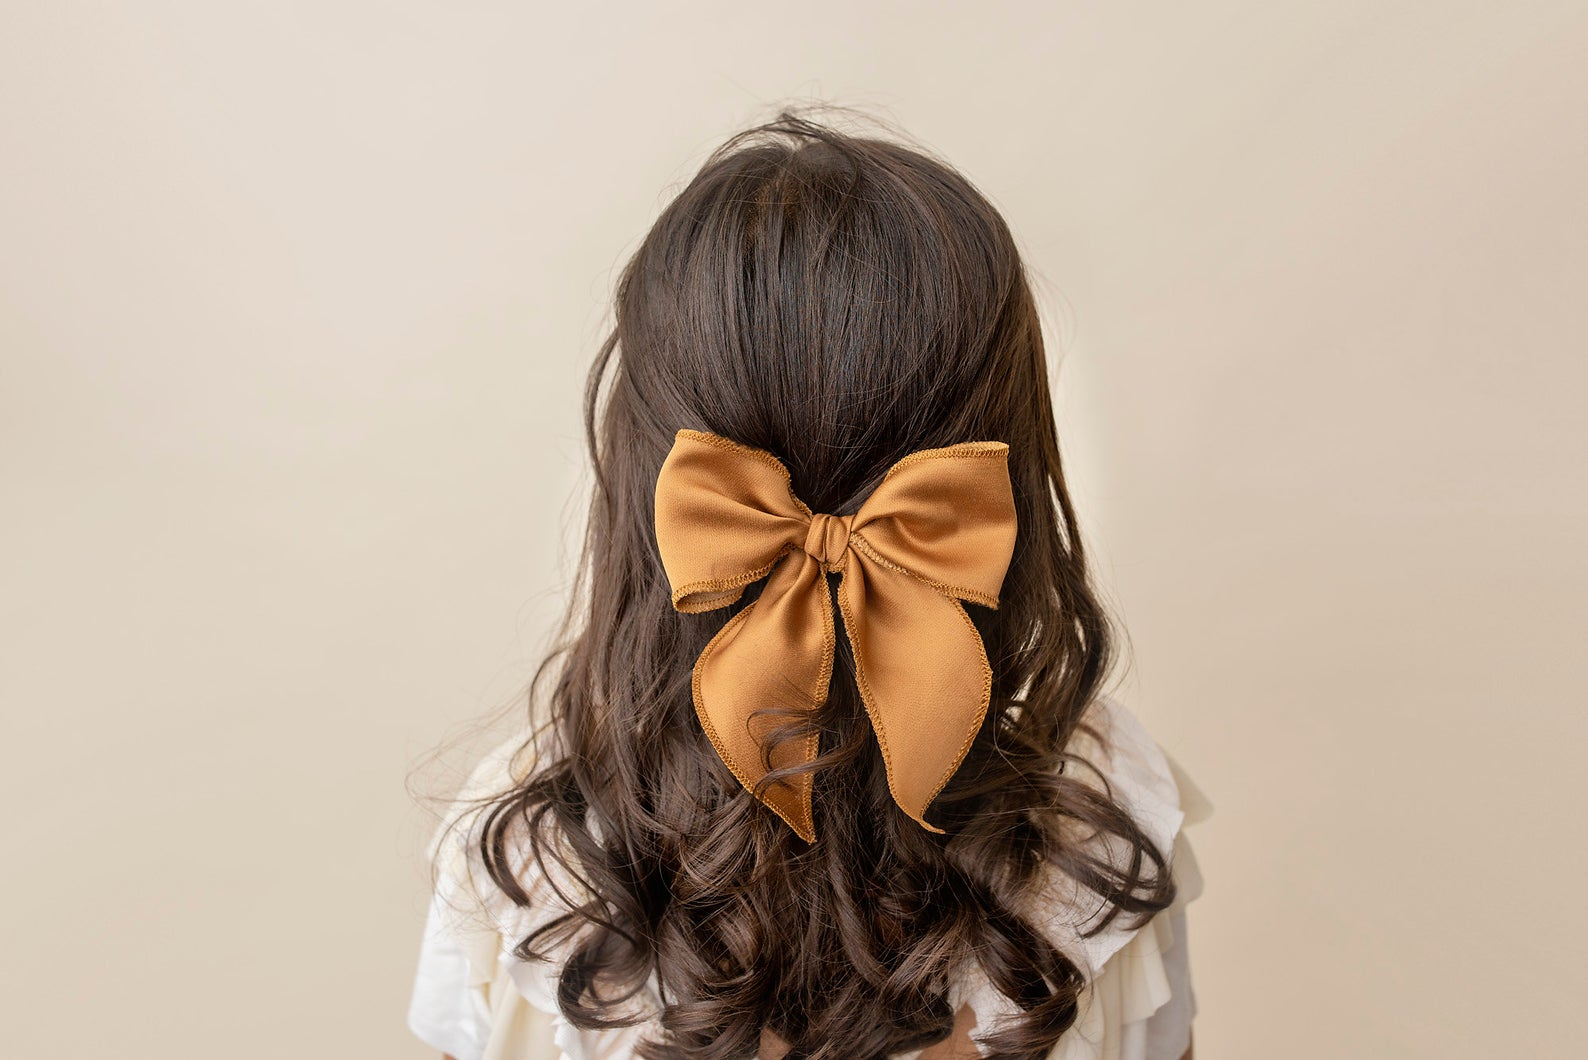 a mustard yellow sailor boutique bow in a girls wavy brown hair